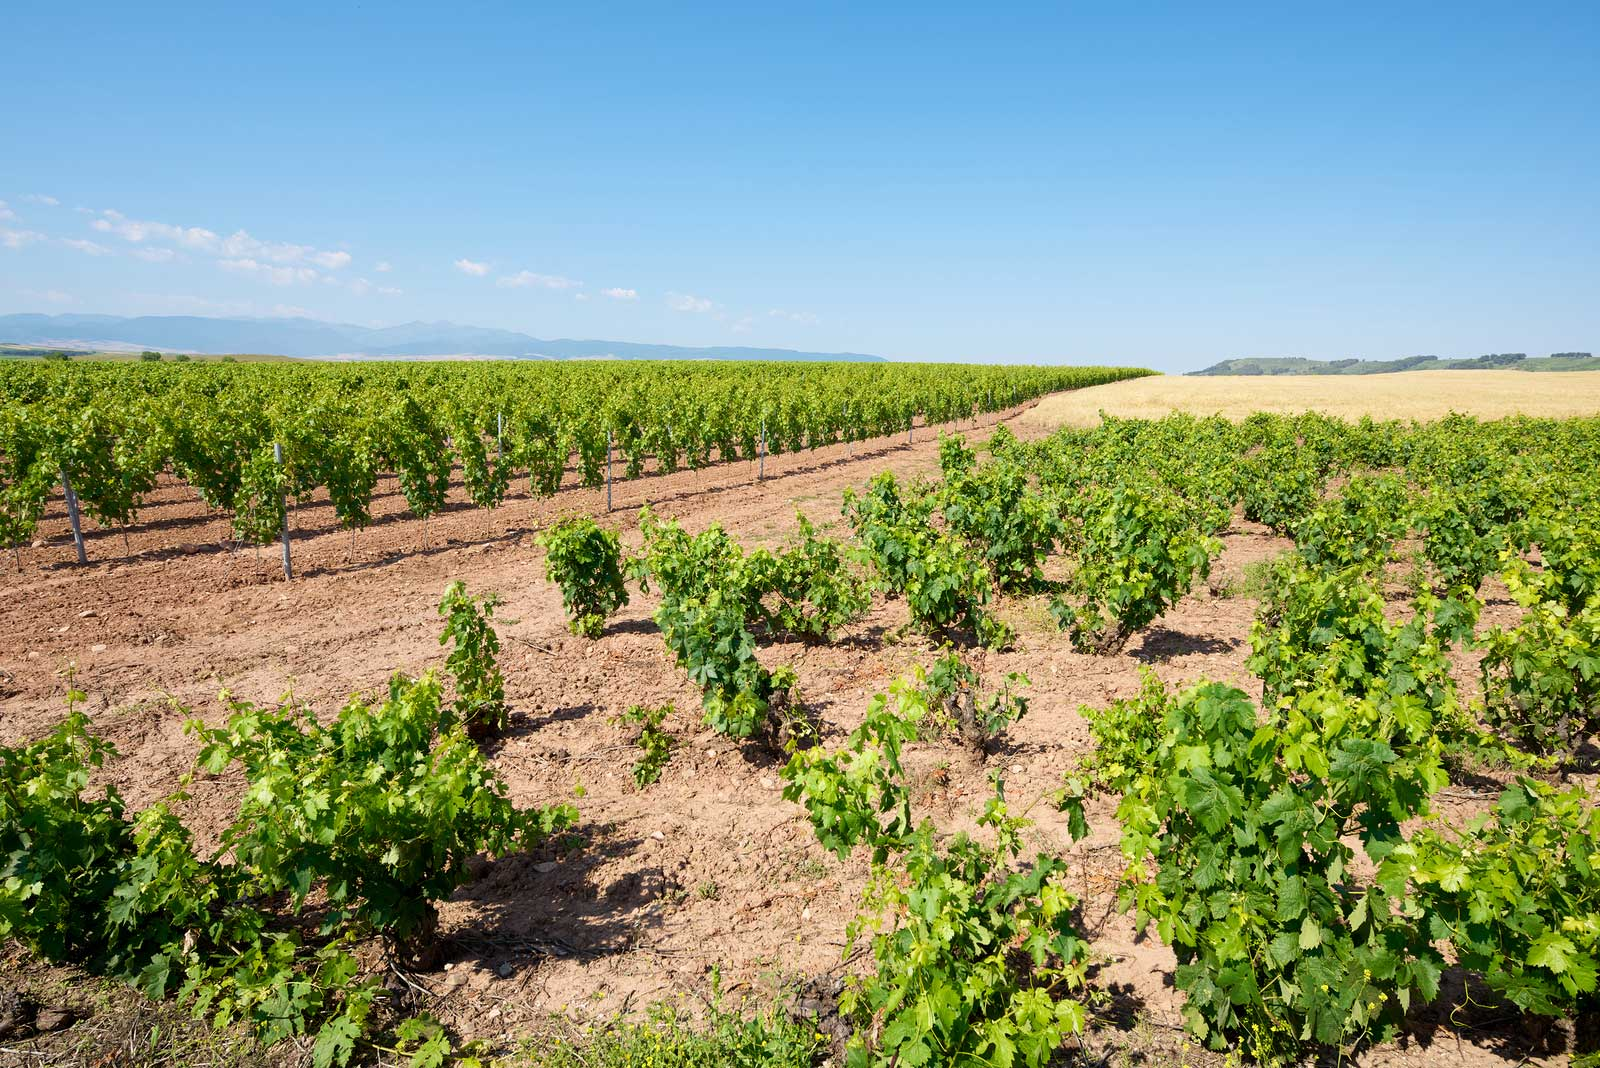 Bush vines of Grenache in Rioja, Spain.